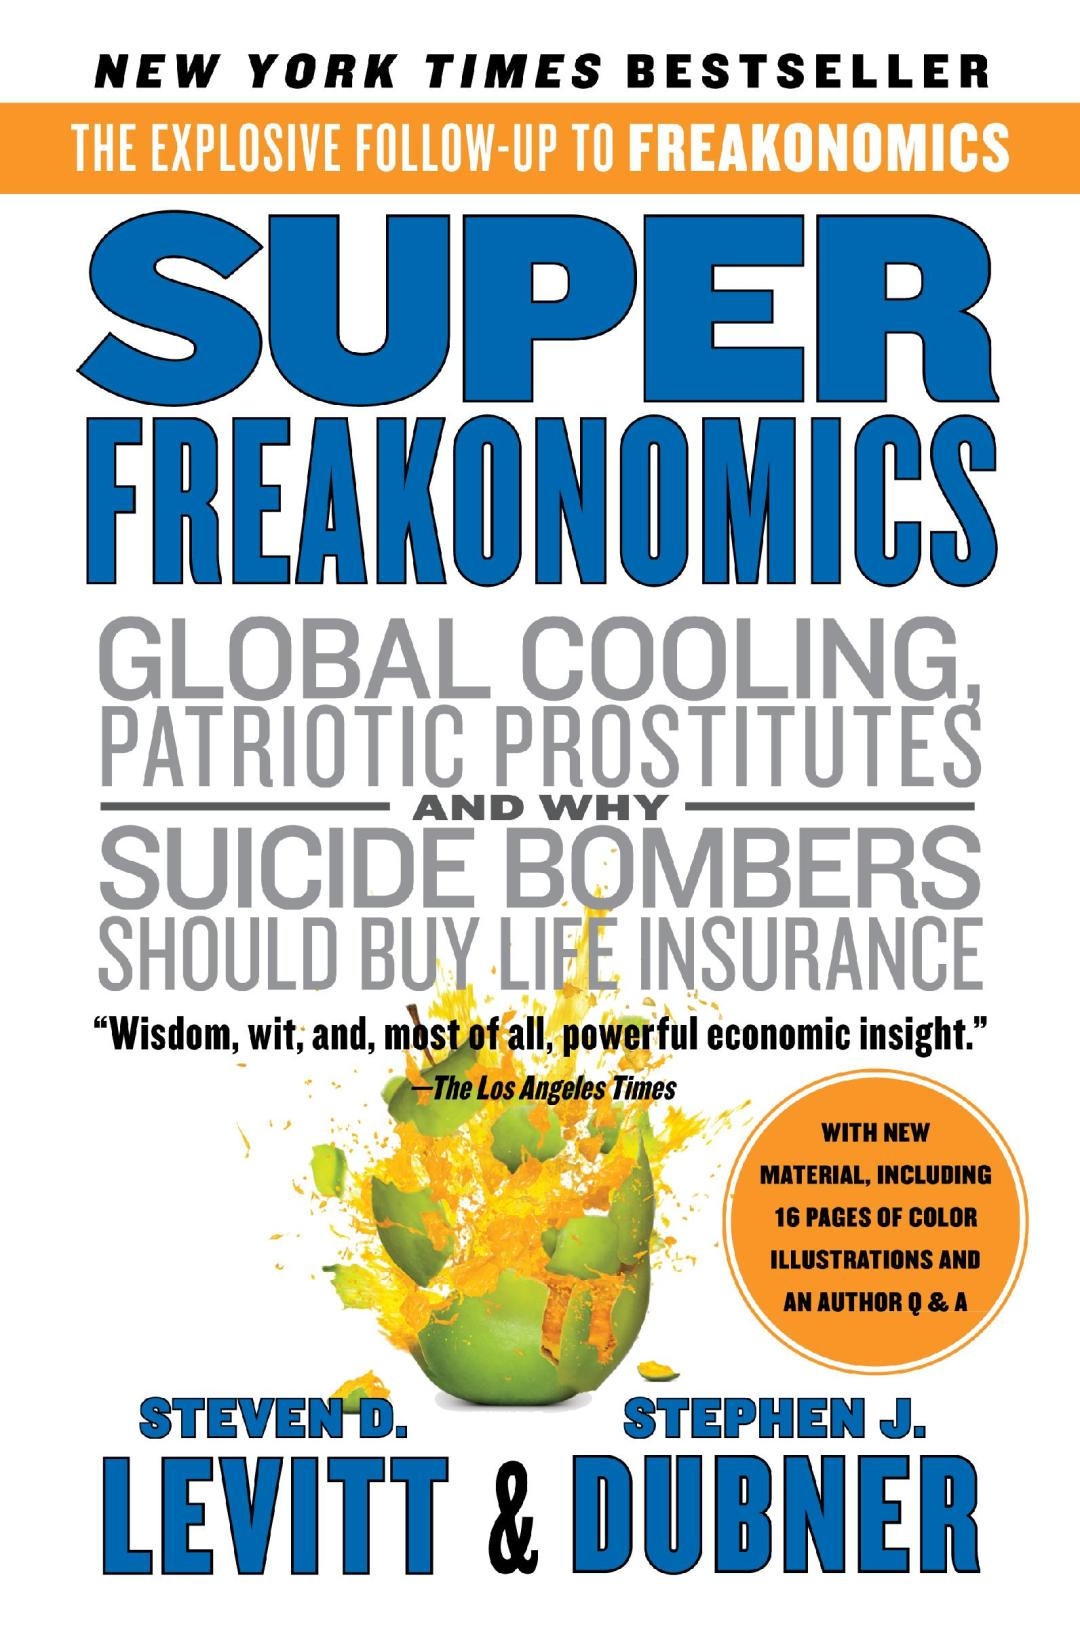 Super Freakonomics: Global Cooling, Patriotic Prostitutes And Why Suicide Bombers Should Buy Life Insurance by Steven D. Levitt & Stephen J. Dubner